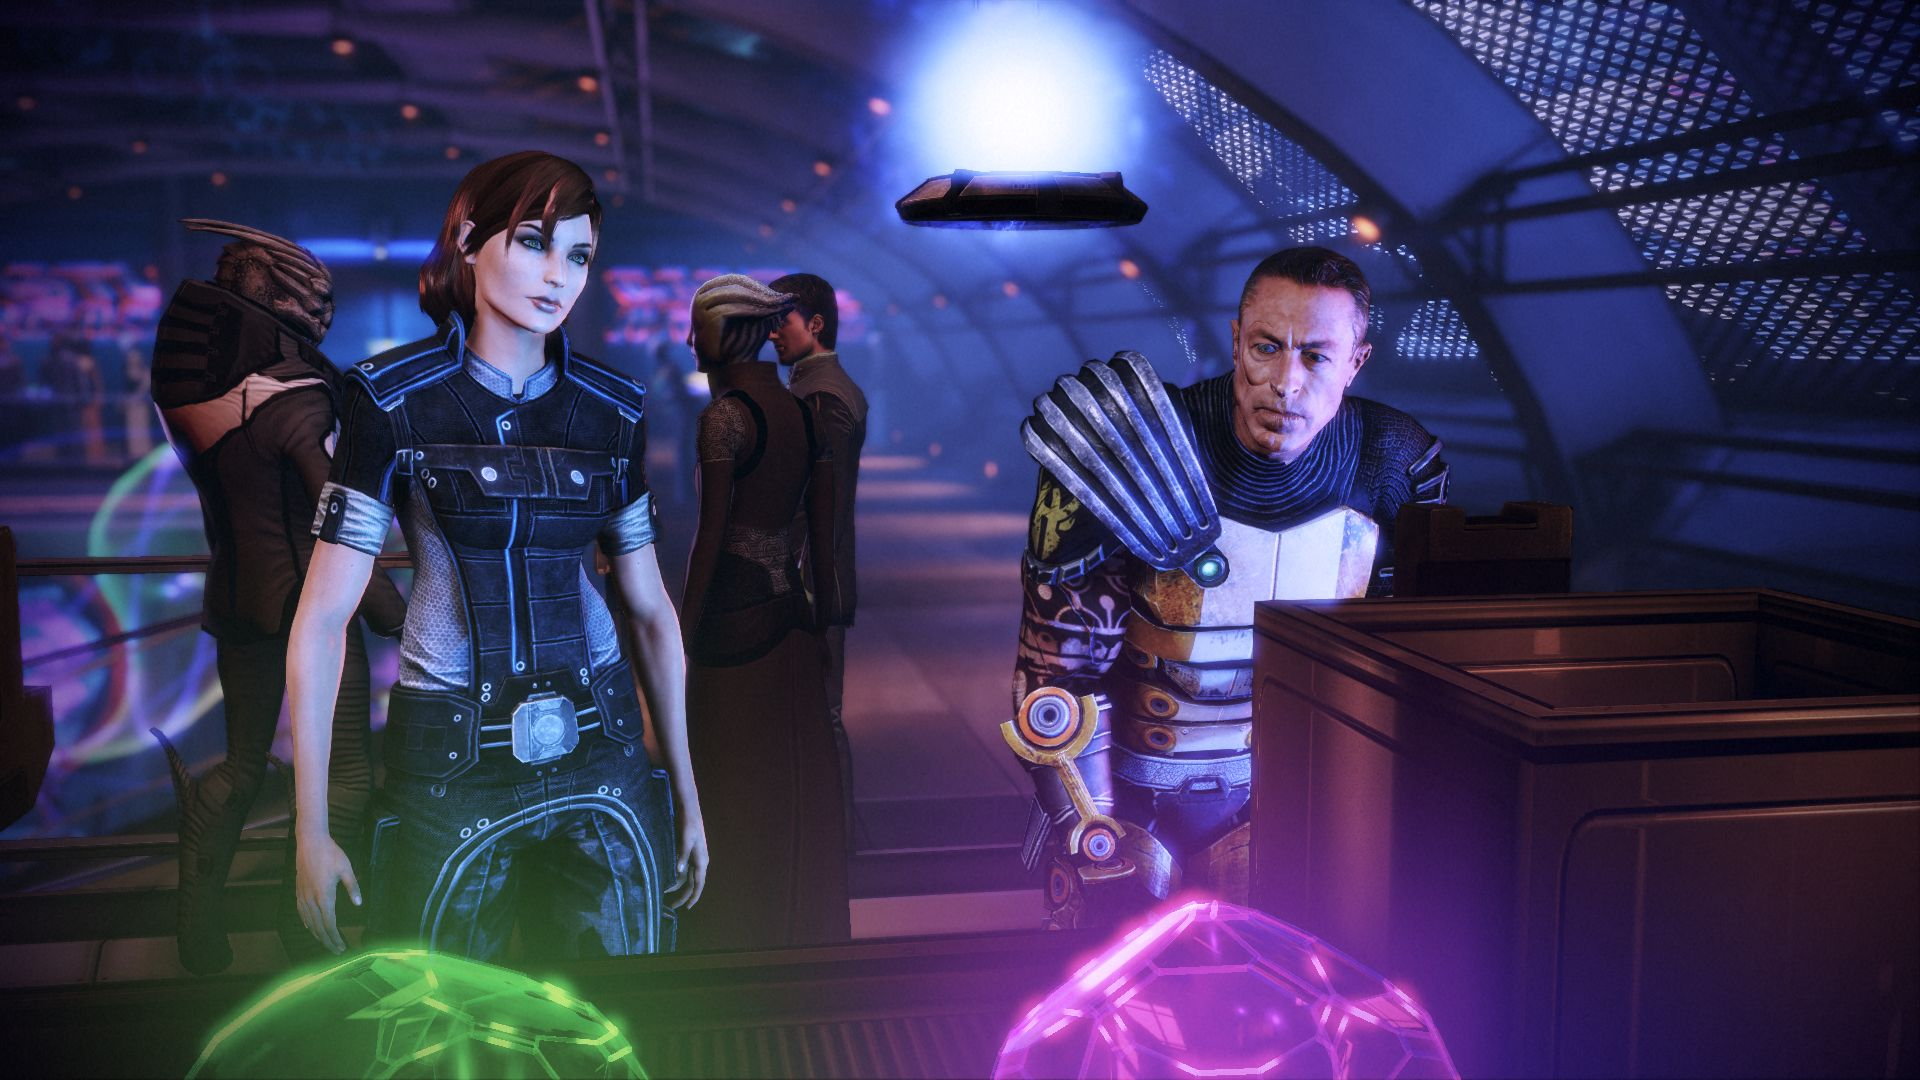 Playing a claw machine in Mass Effect 3's Citadel DLC